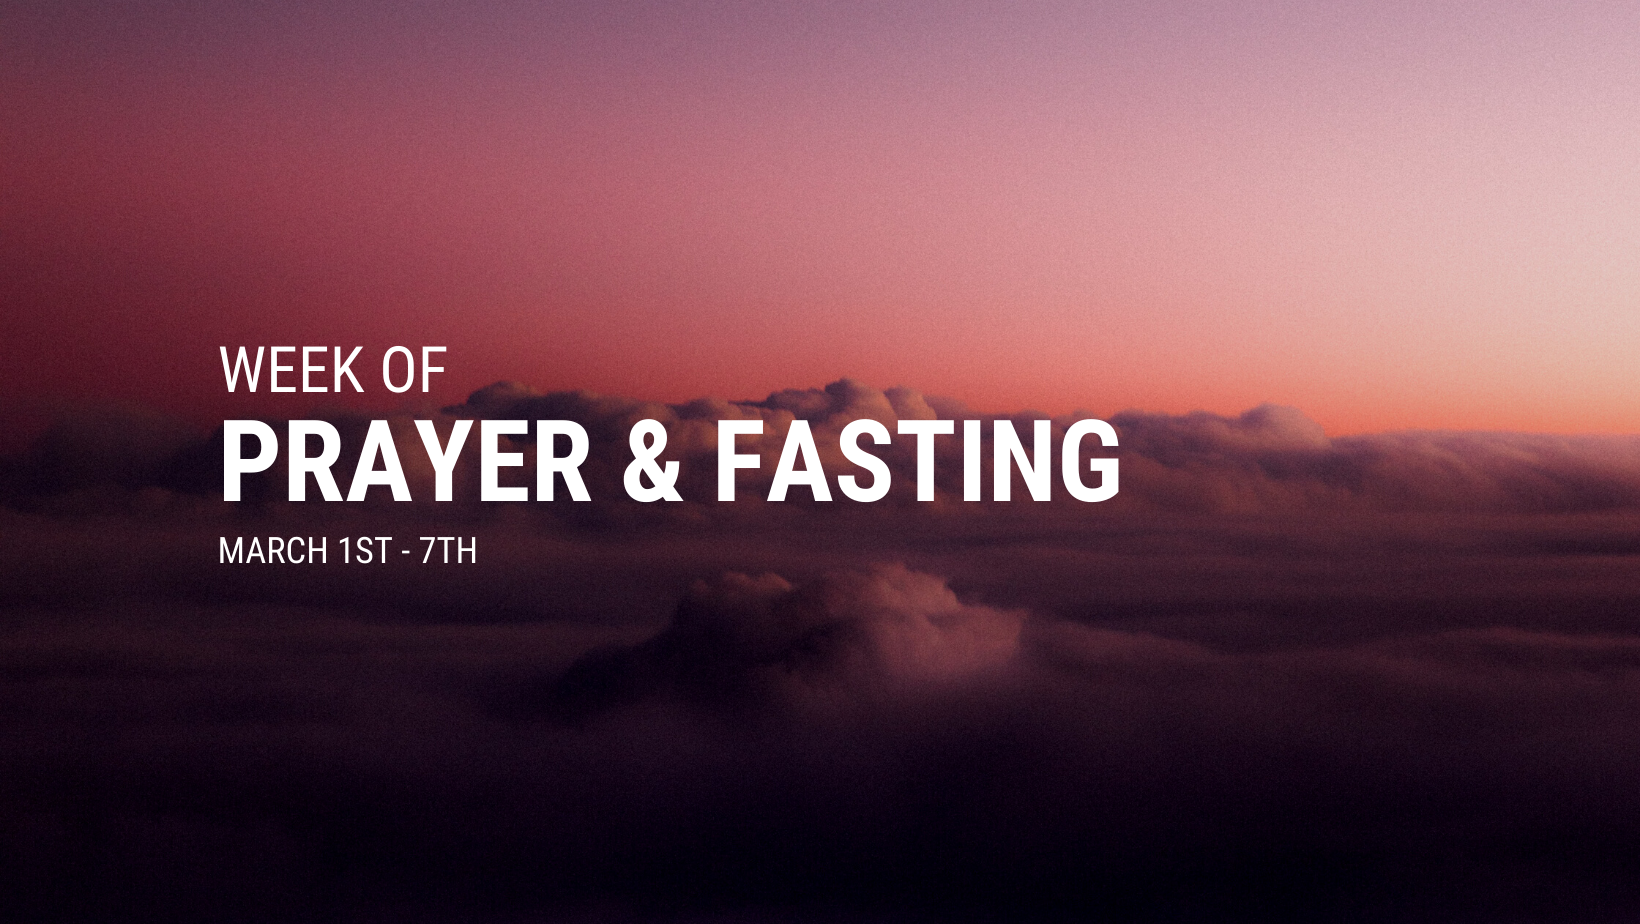 week of prayer and fasting 2021 image